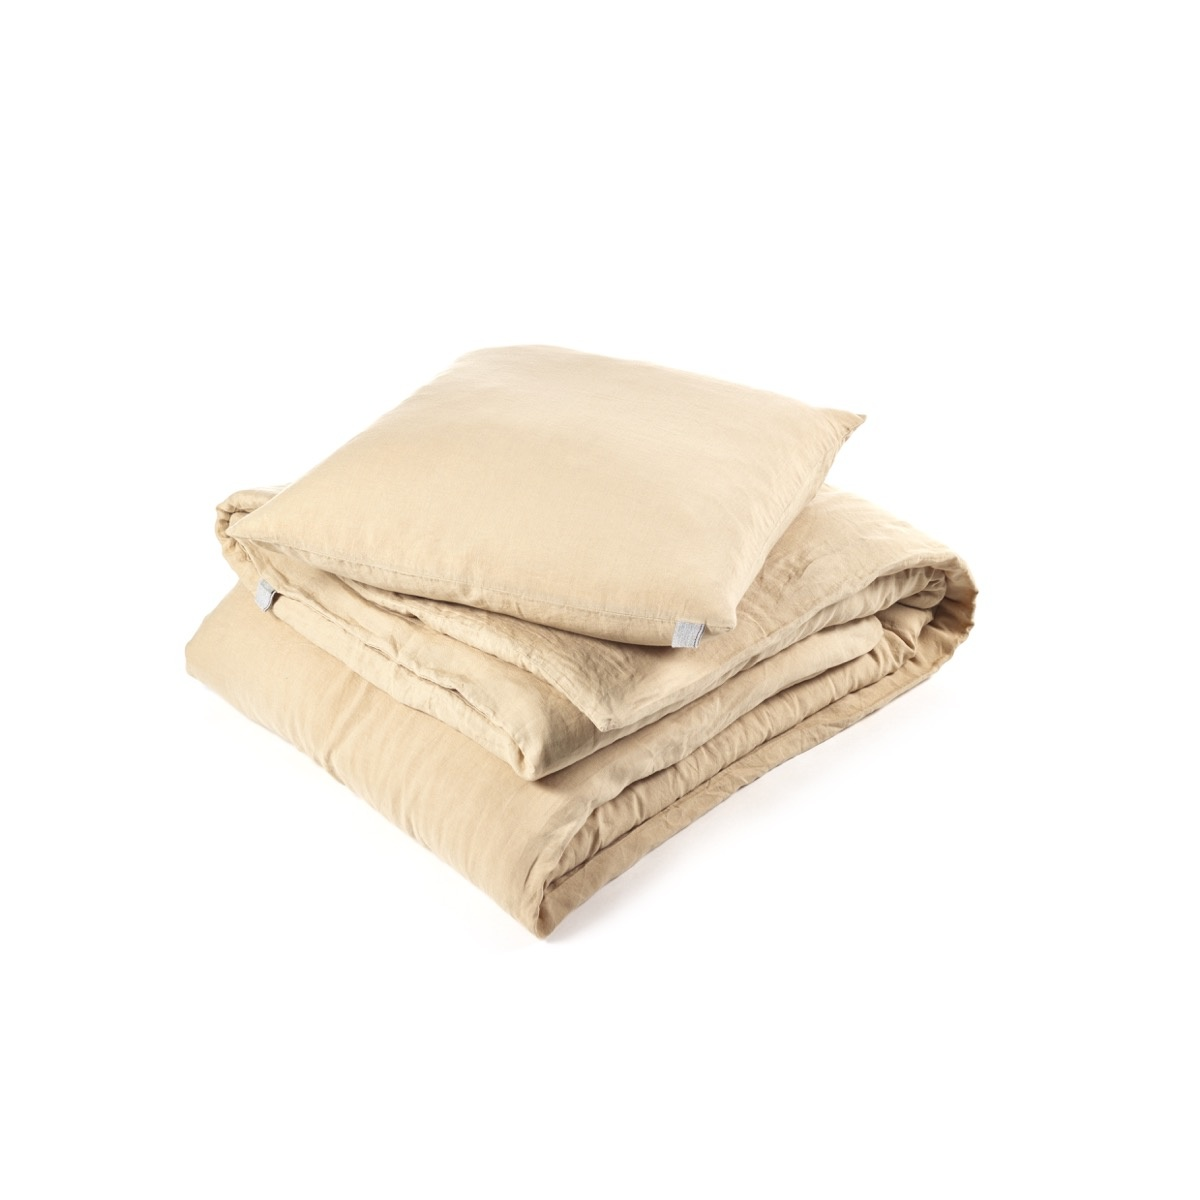 Pillowcase Sham King - Memphis - Camel-1